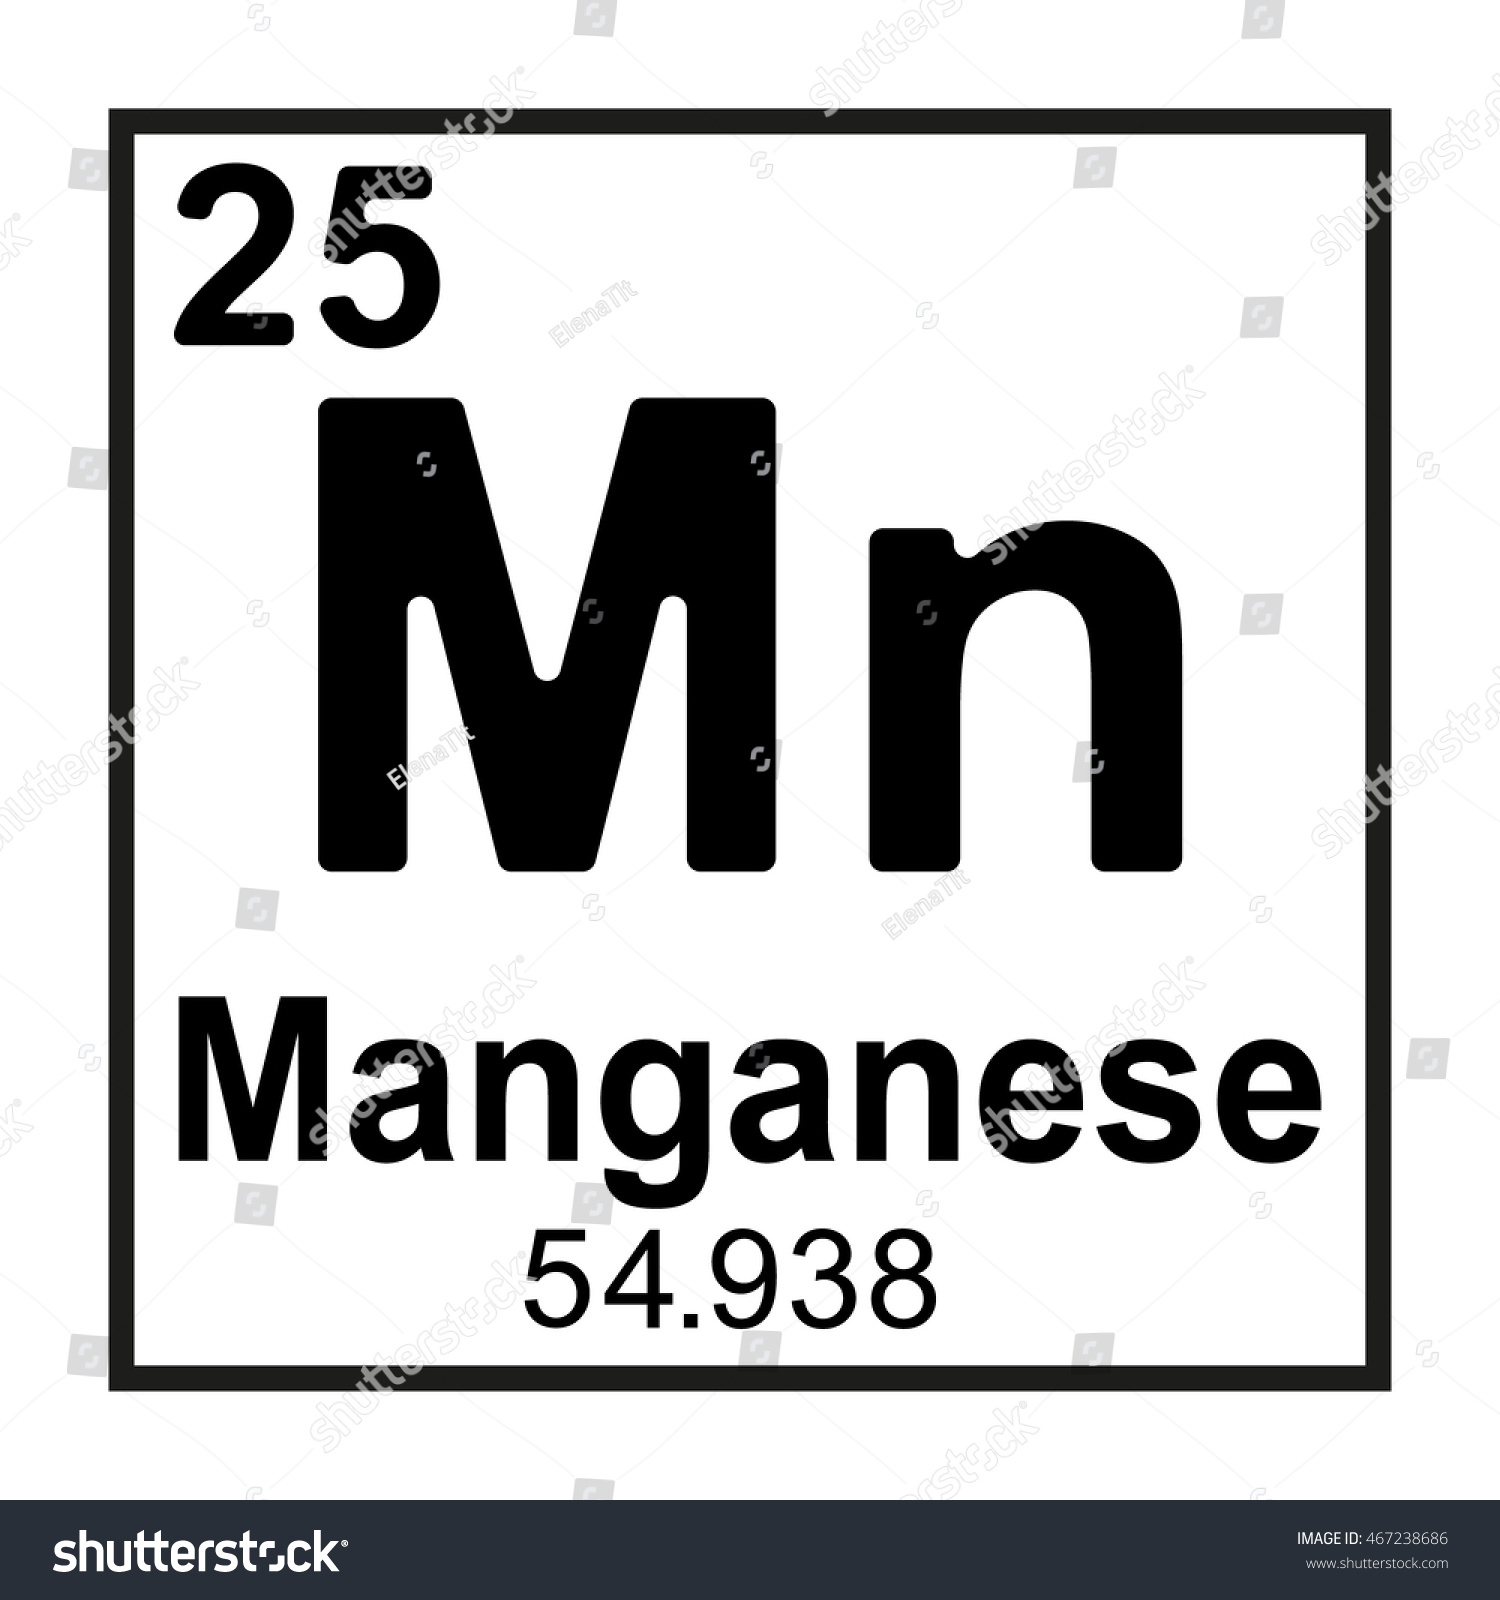 Periodic table element manganese stock vector 467238686 shutterstock periodic table element manganese gamestrikefo Choice Image